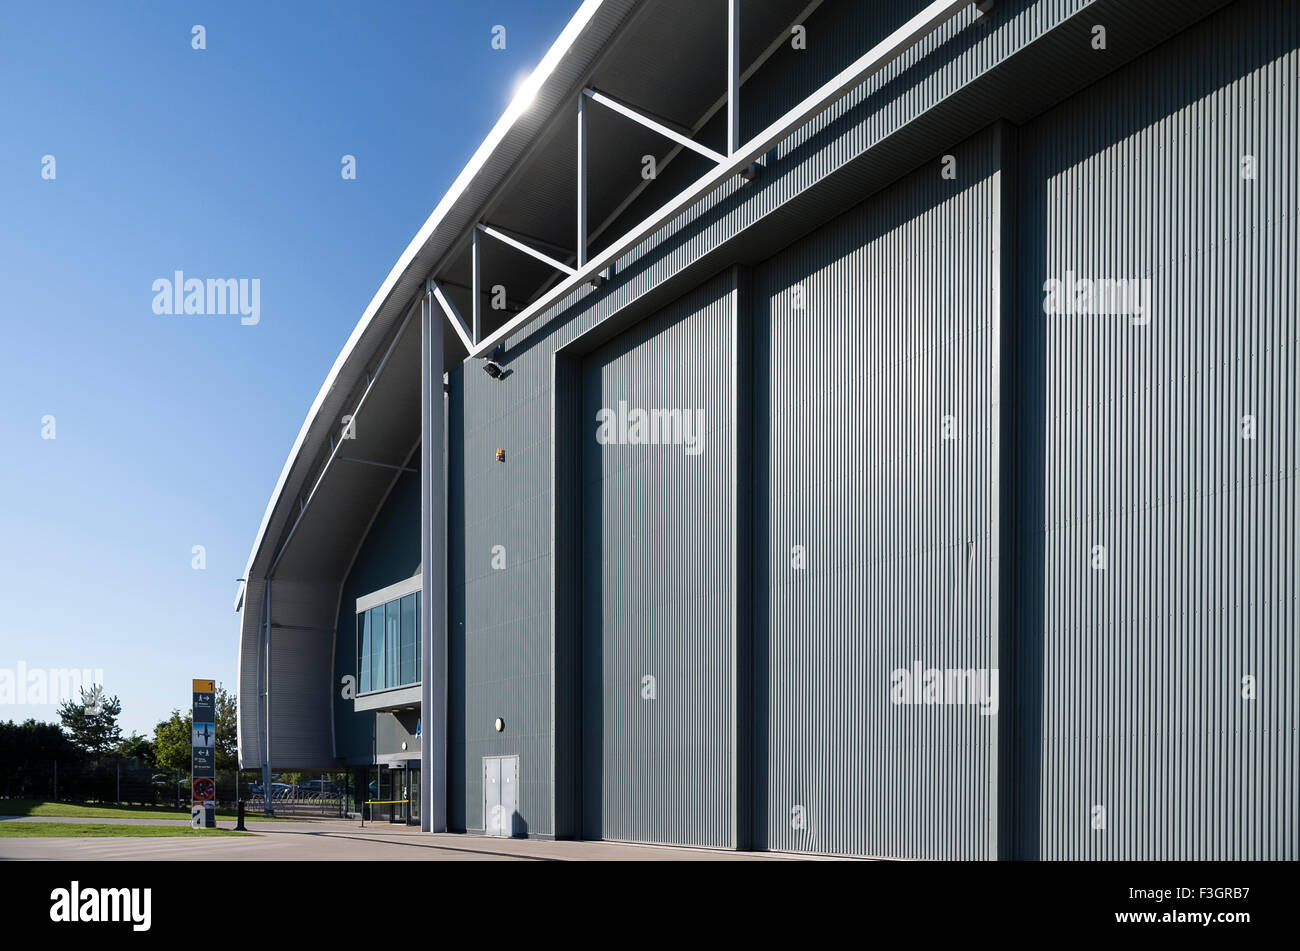 Giant sliding doors and entrance to AirSpace hangar at IWM Duxford UK - Stock Image